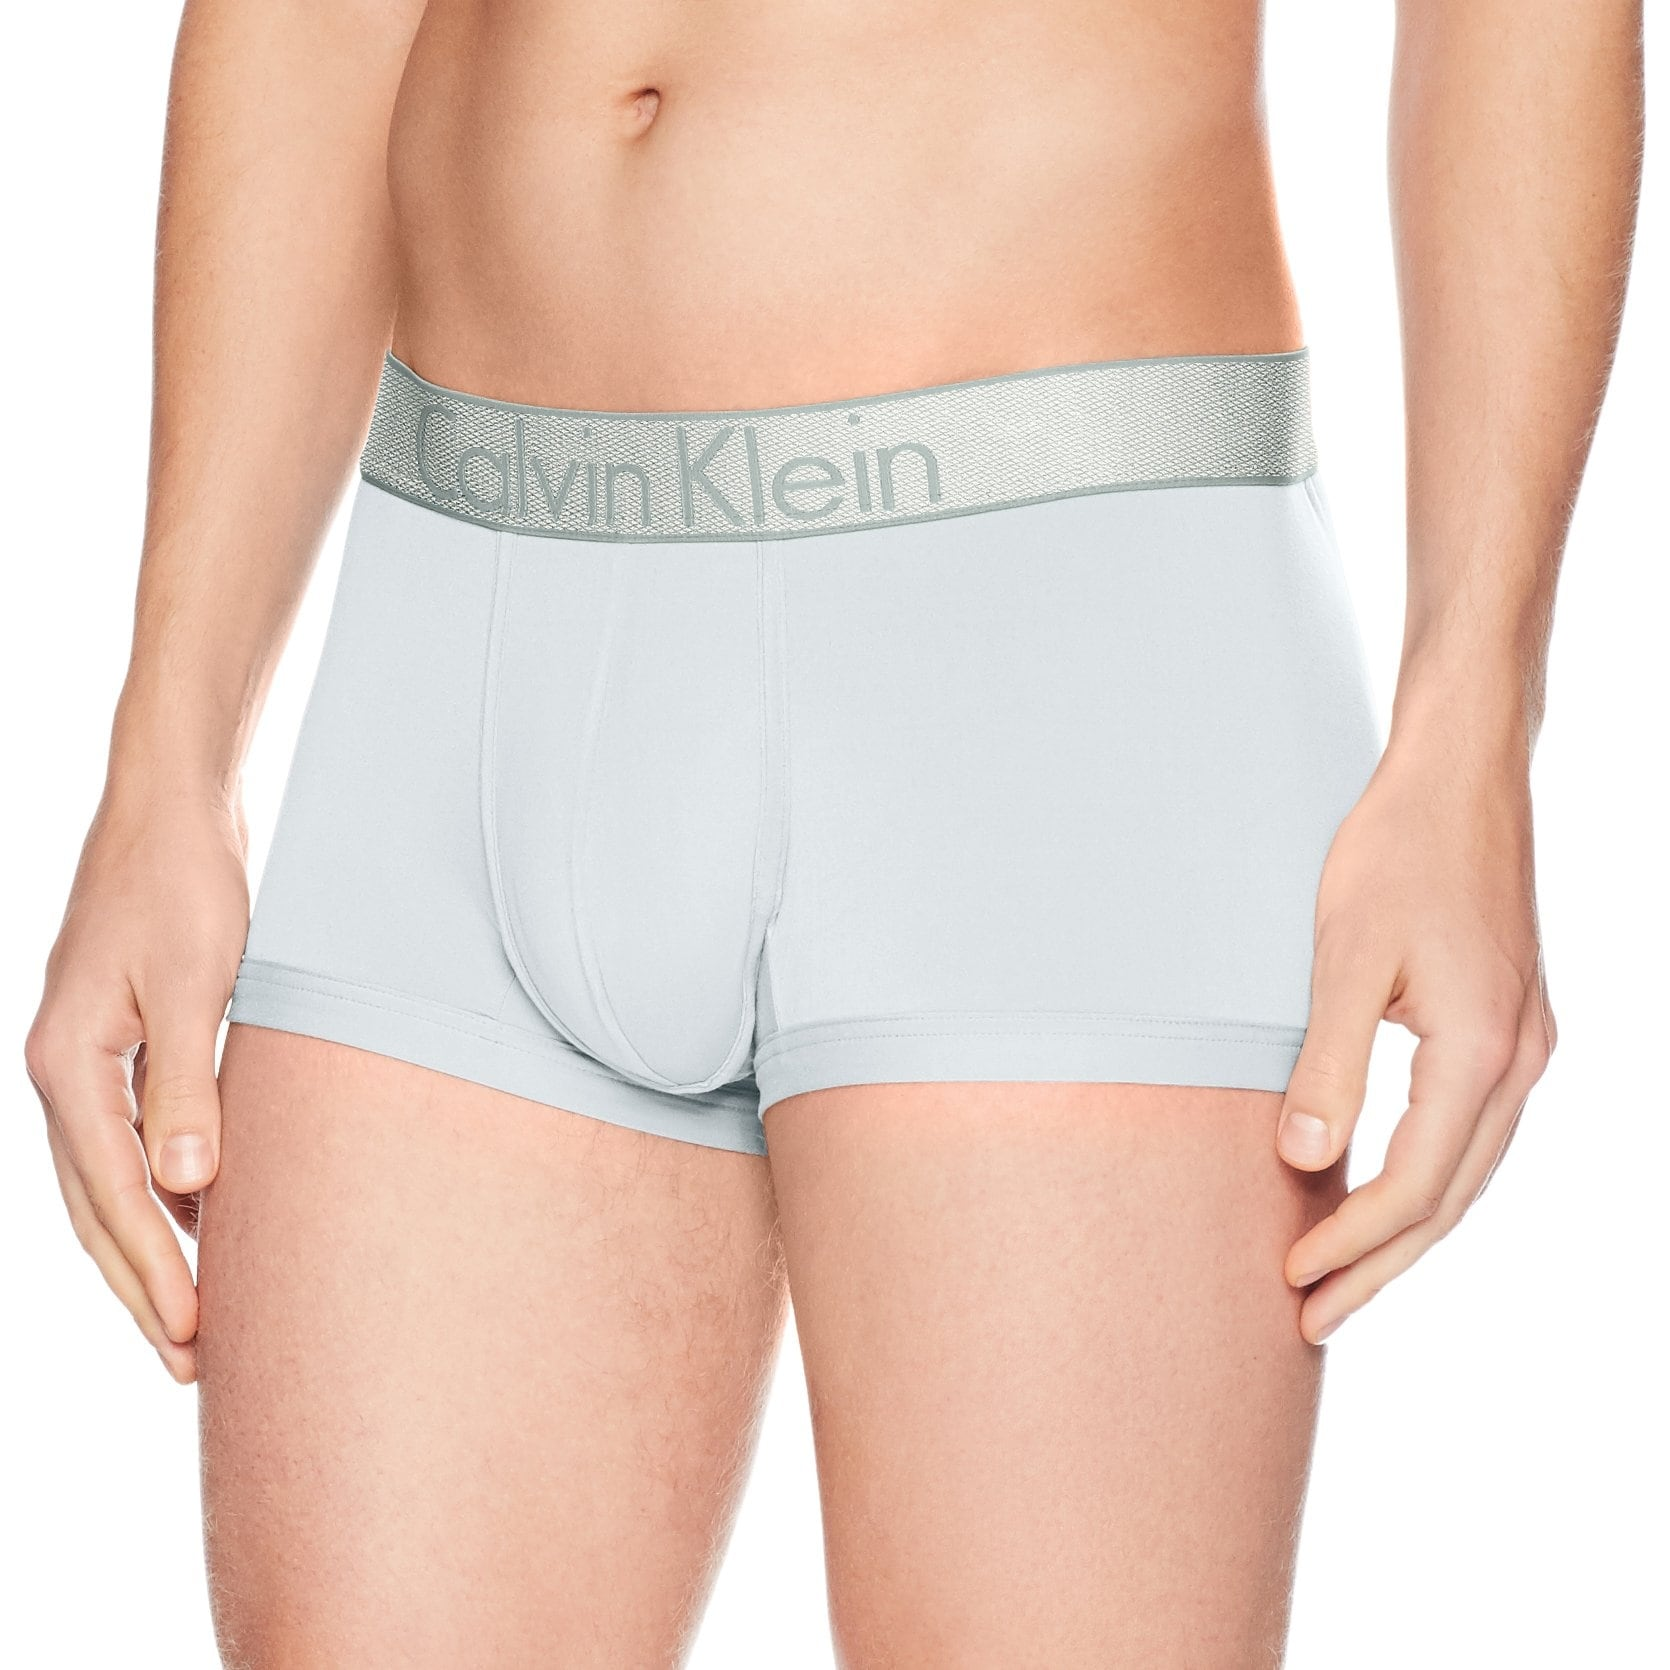 63494cce7fb4 Calvin Klein Underwear | Find Great Men's Clothing Deals Shopping at  Overstock